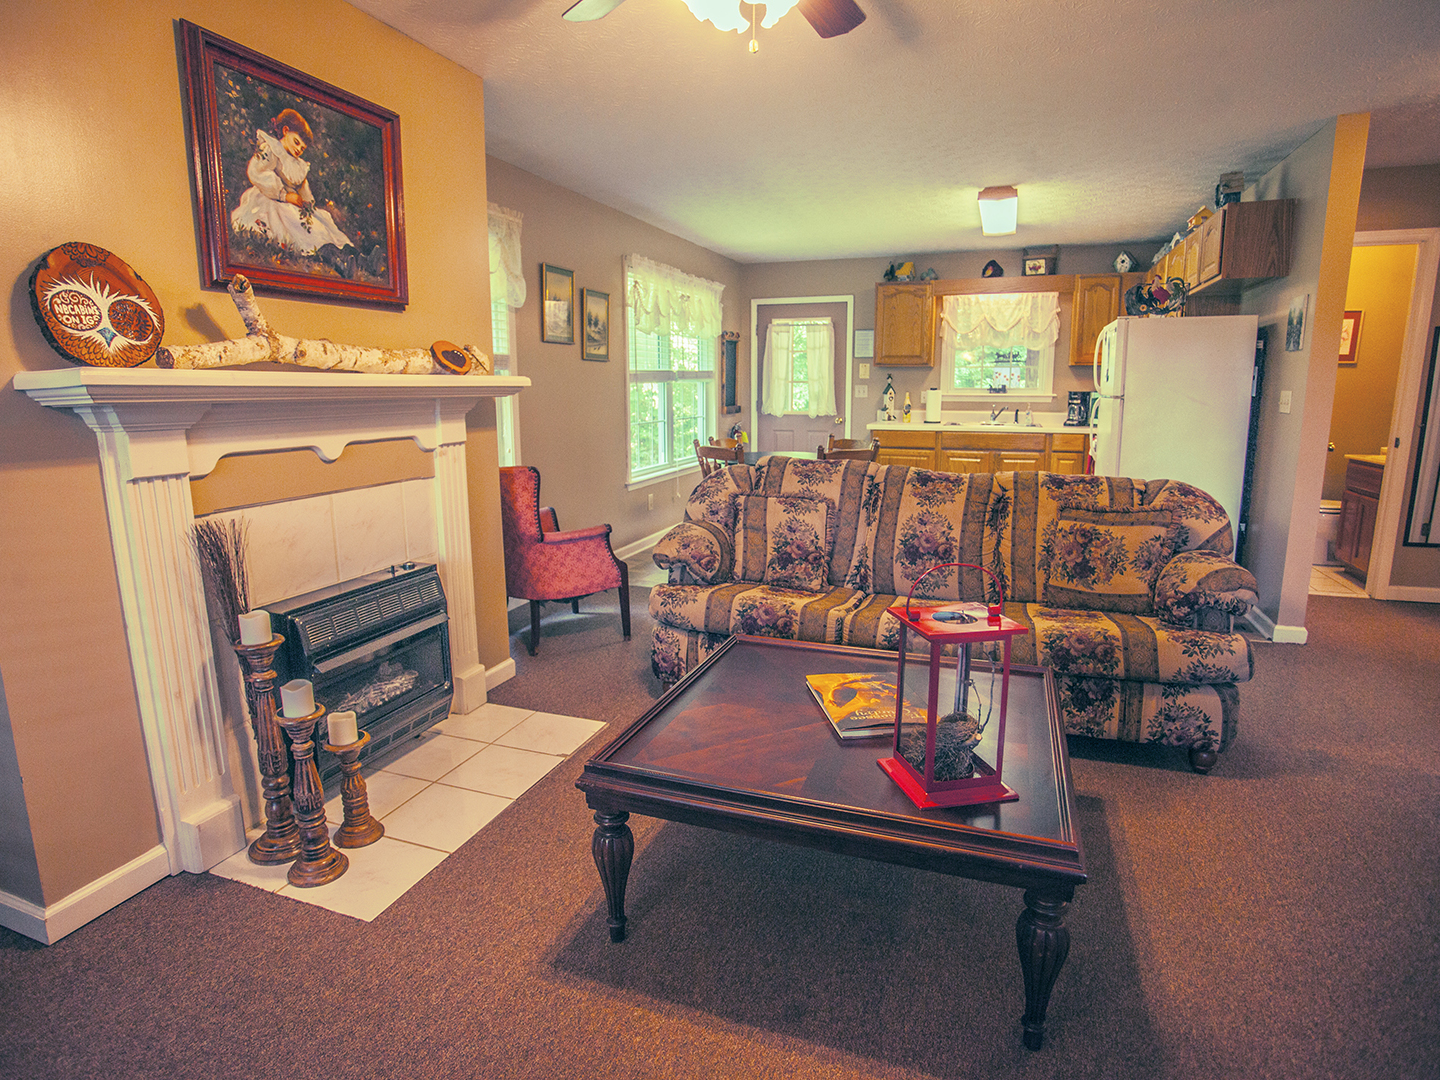 A living room filled with furniture and a fireplace at Nolichuckey Bluffs Bed & Breakfast Cabins.